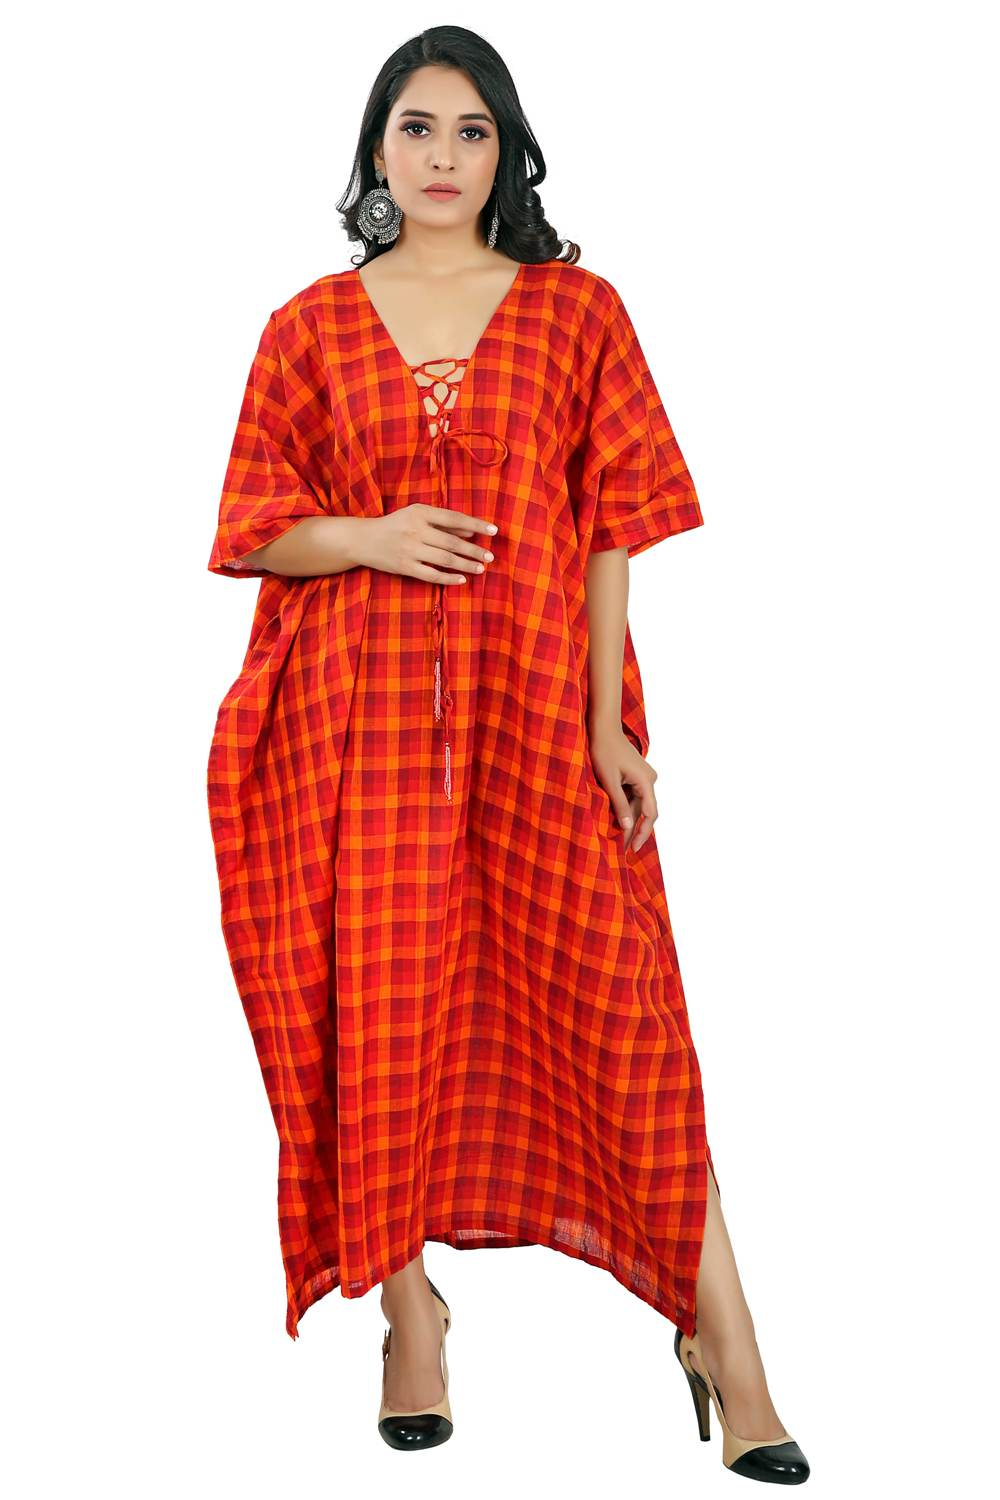 Lace up Exquisite Chex Print long Kaftan Dress with Striped Neckline